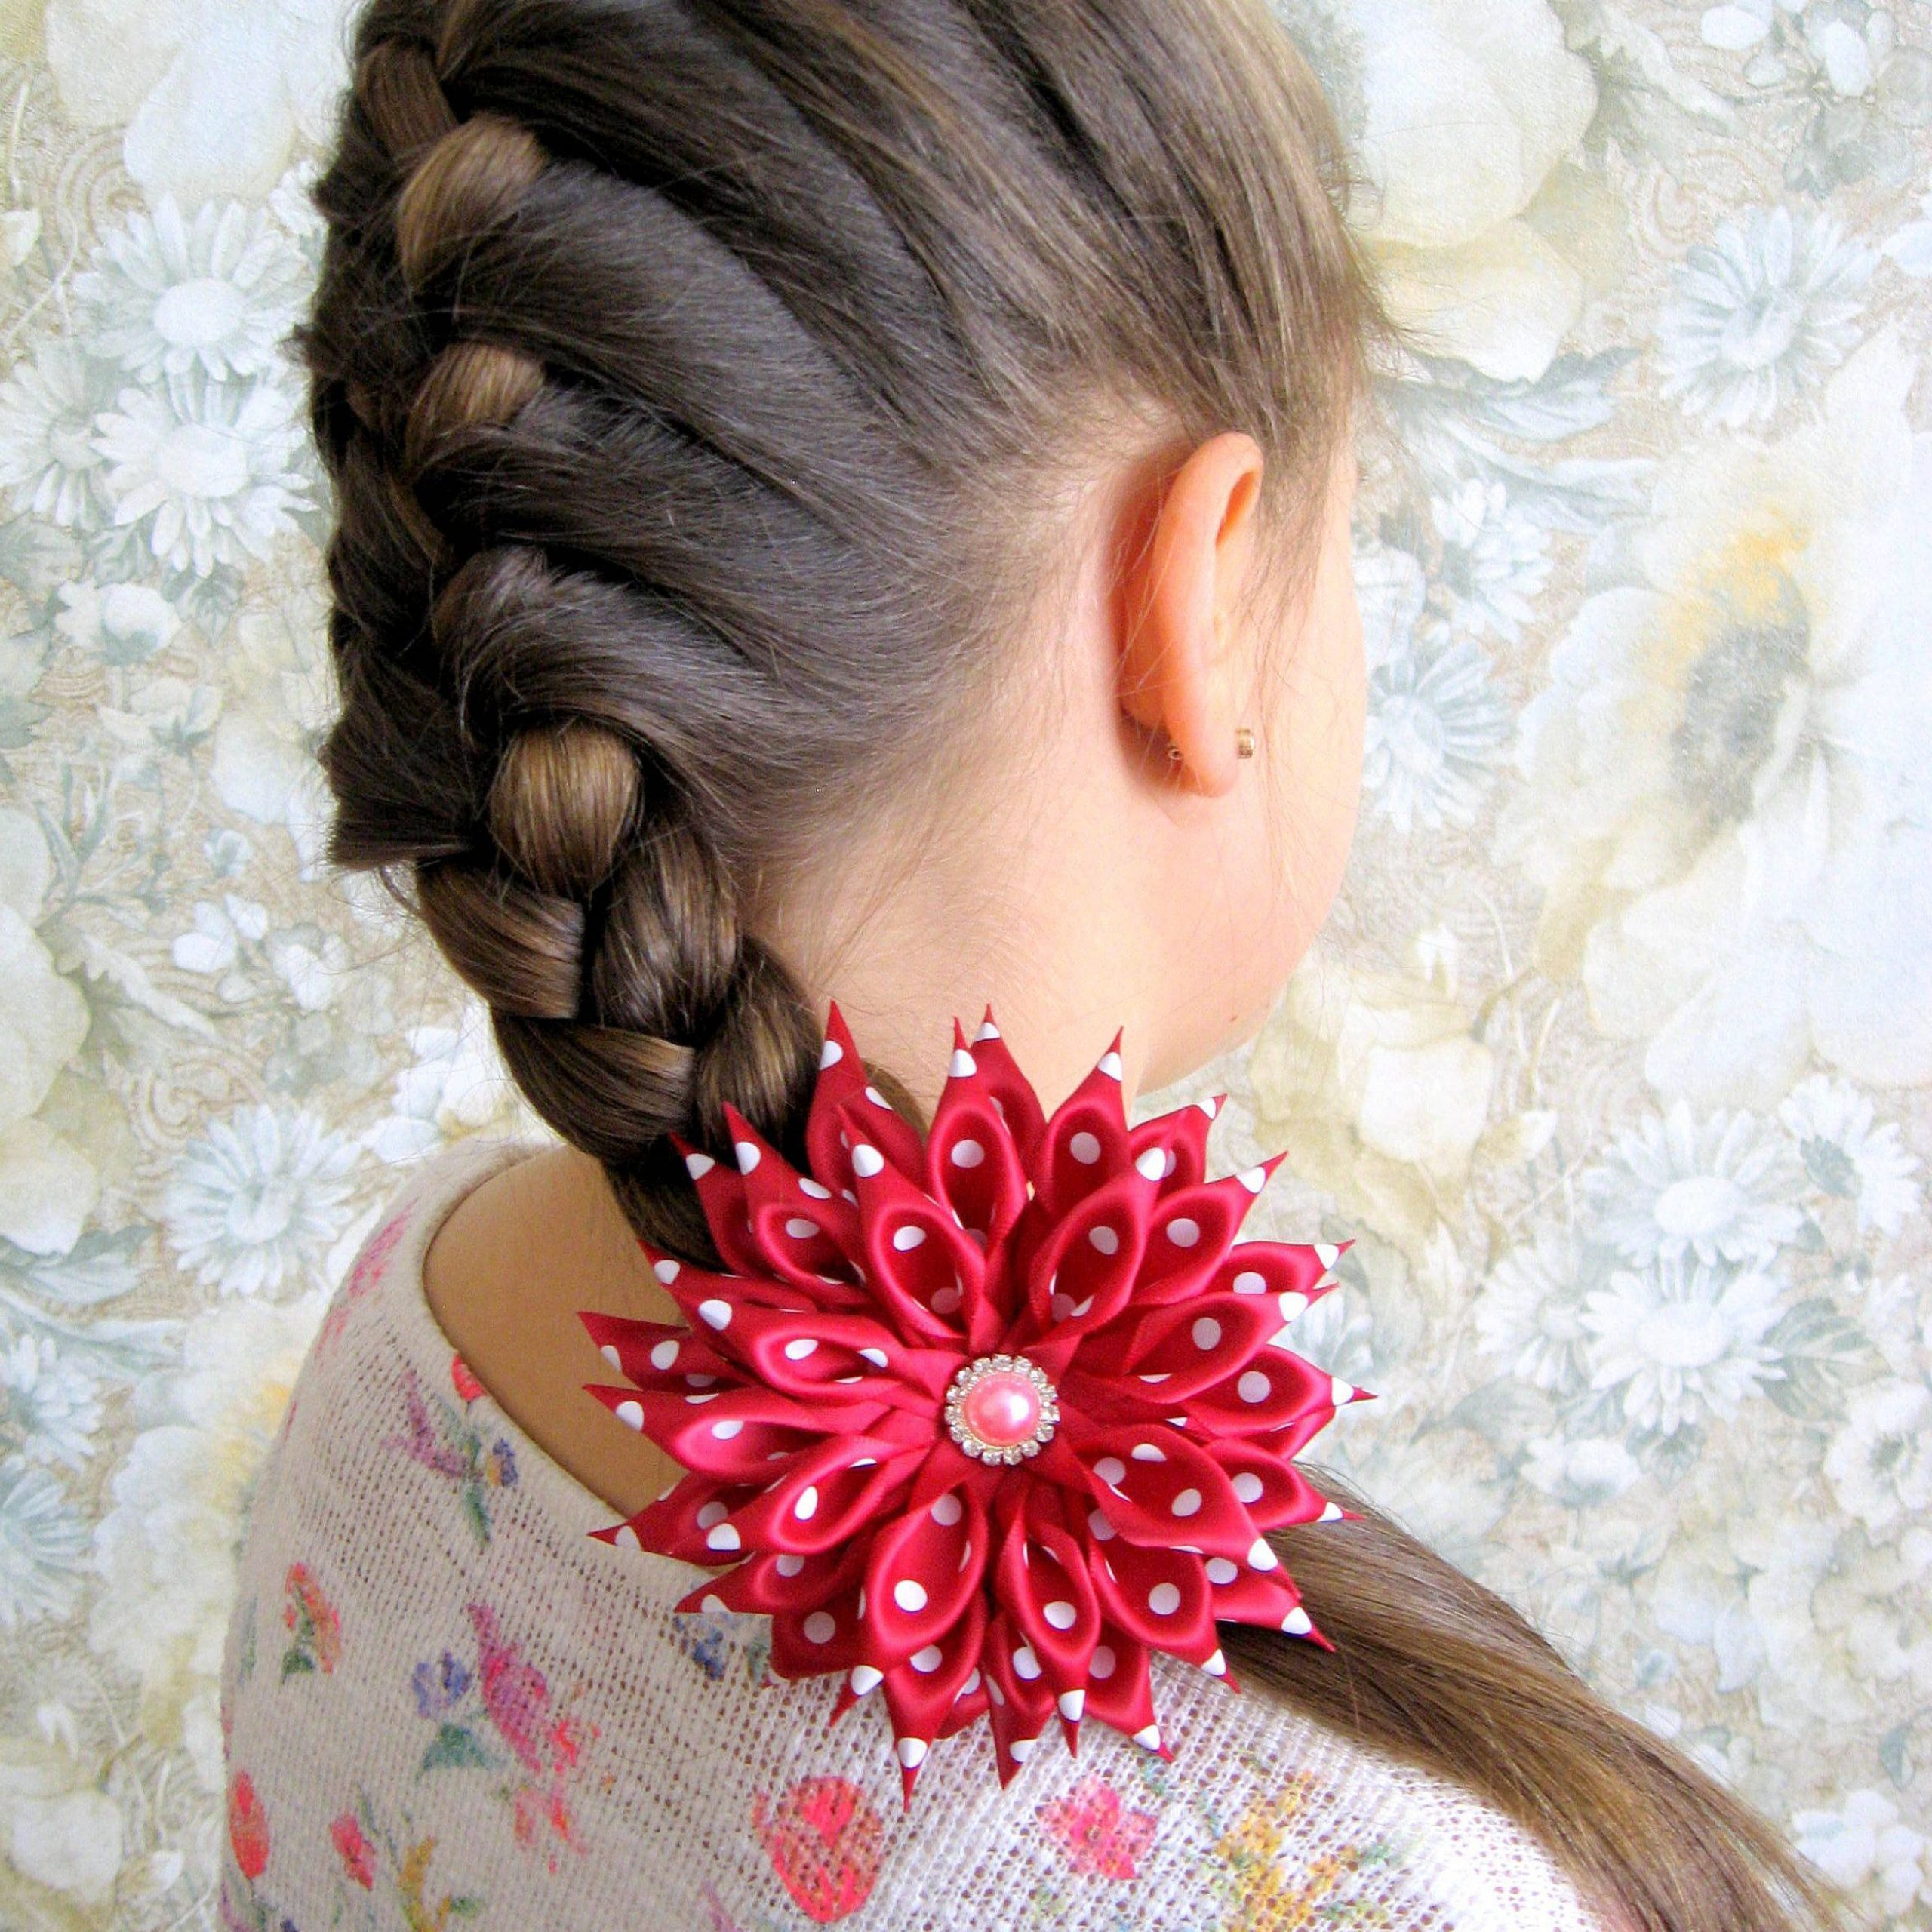 Scrunchie For Girls, Scrunchie For Women, Womens Scrunchie With Most Popular Scrunchie Hairstyles (View 10 of 20)